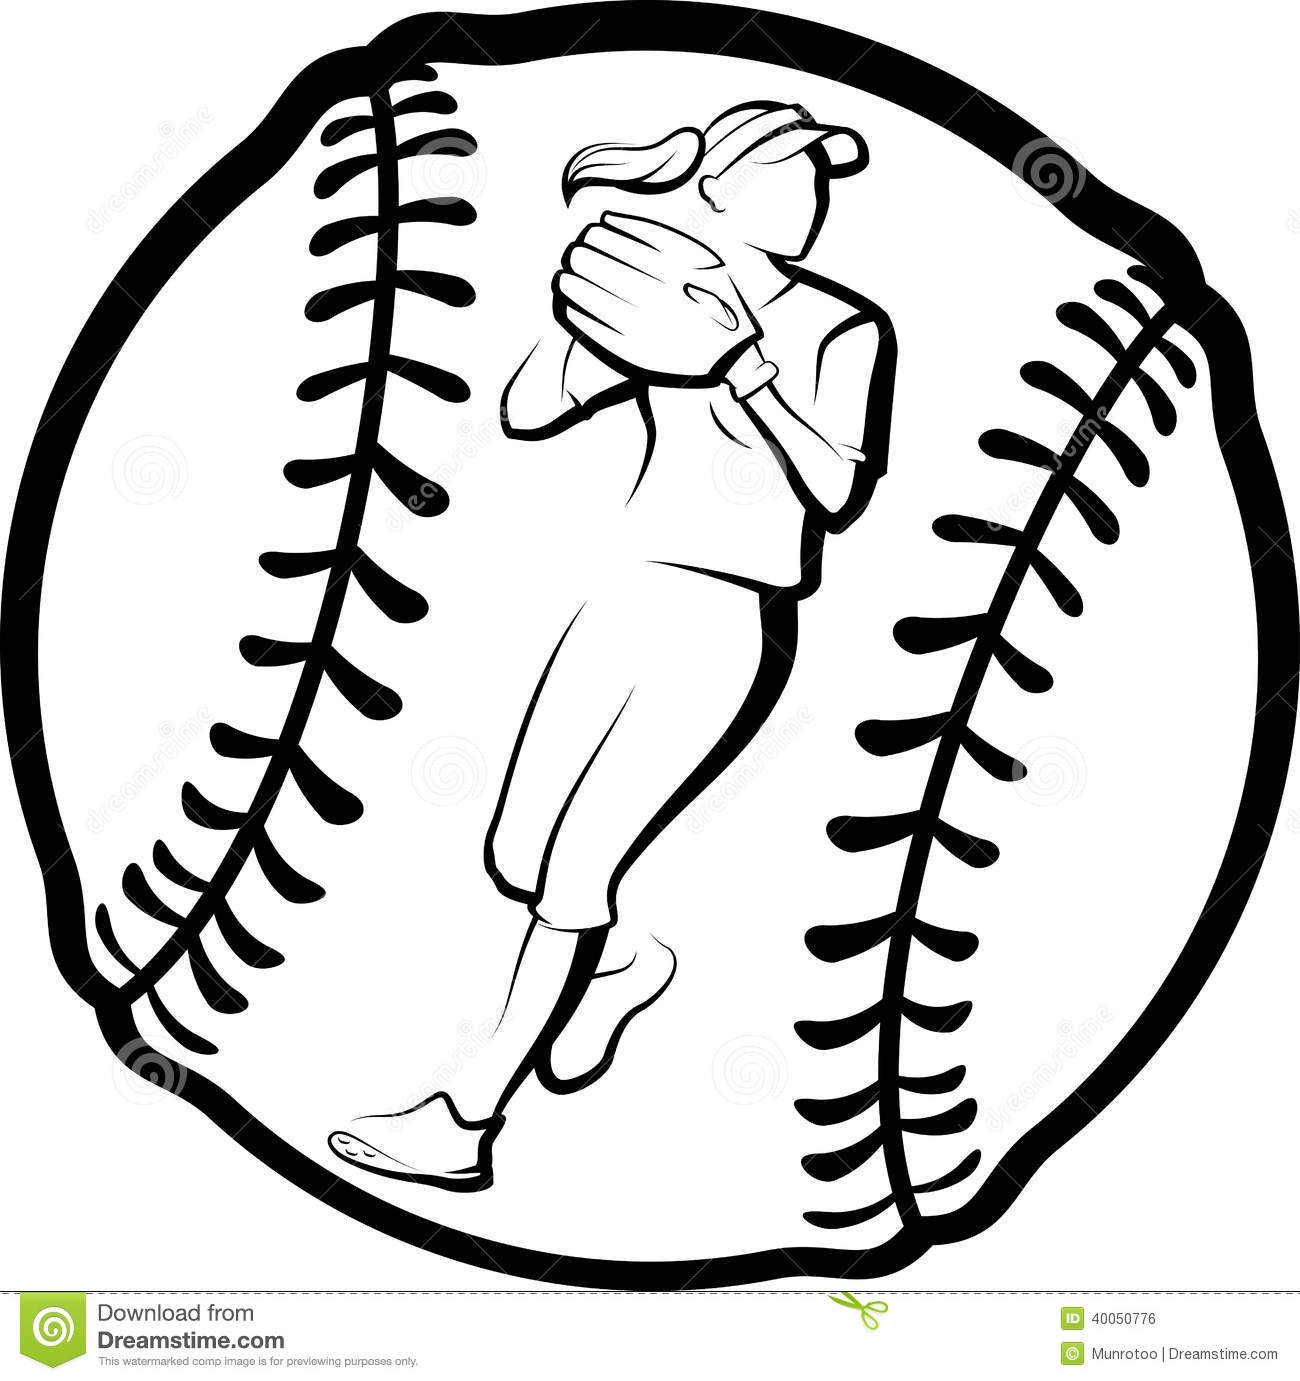 Softball Player Throwing In Ball Stock Vector